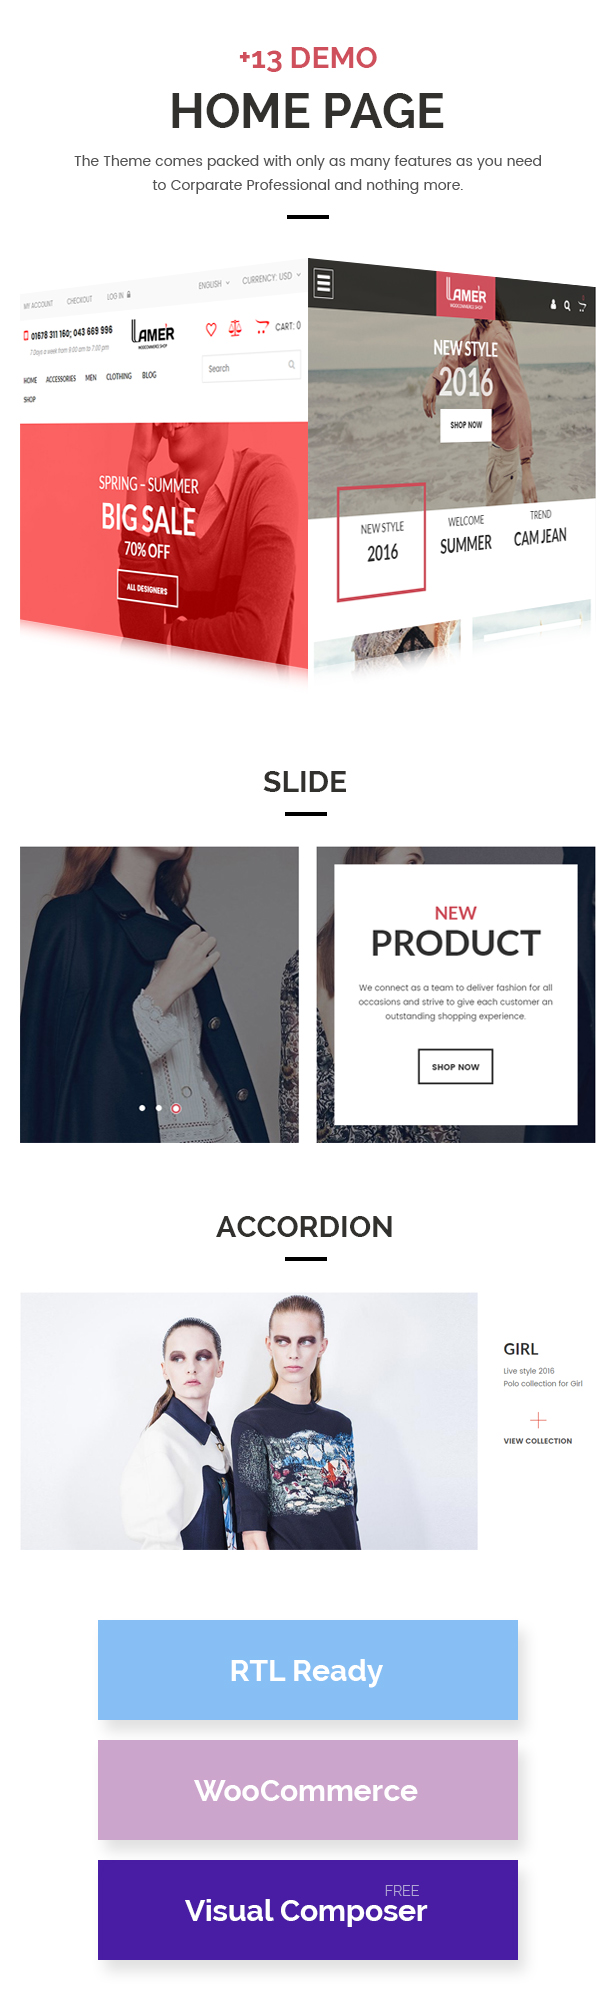 Lamer Fashion - WooCommerce WordPress Theme - 4